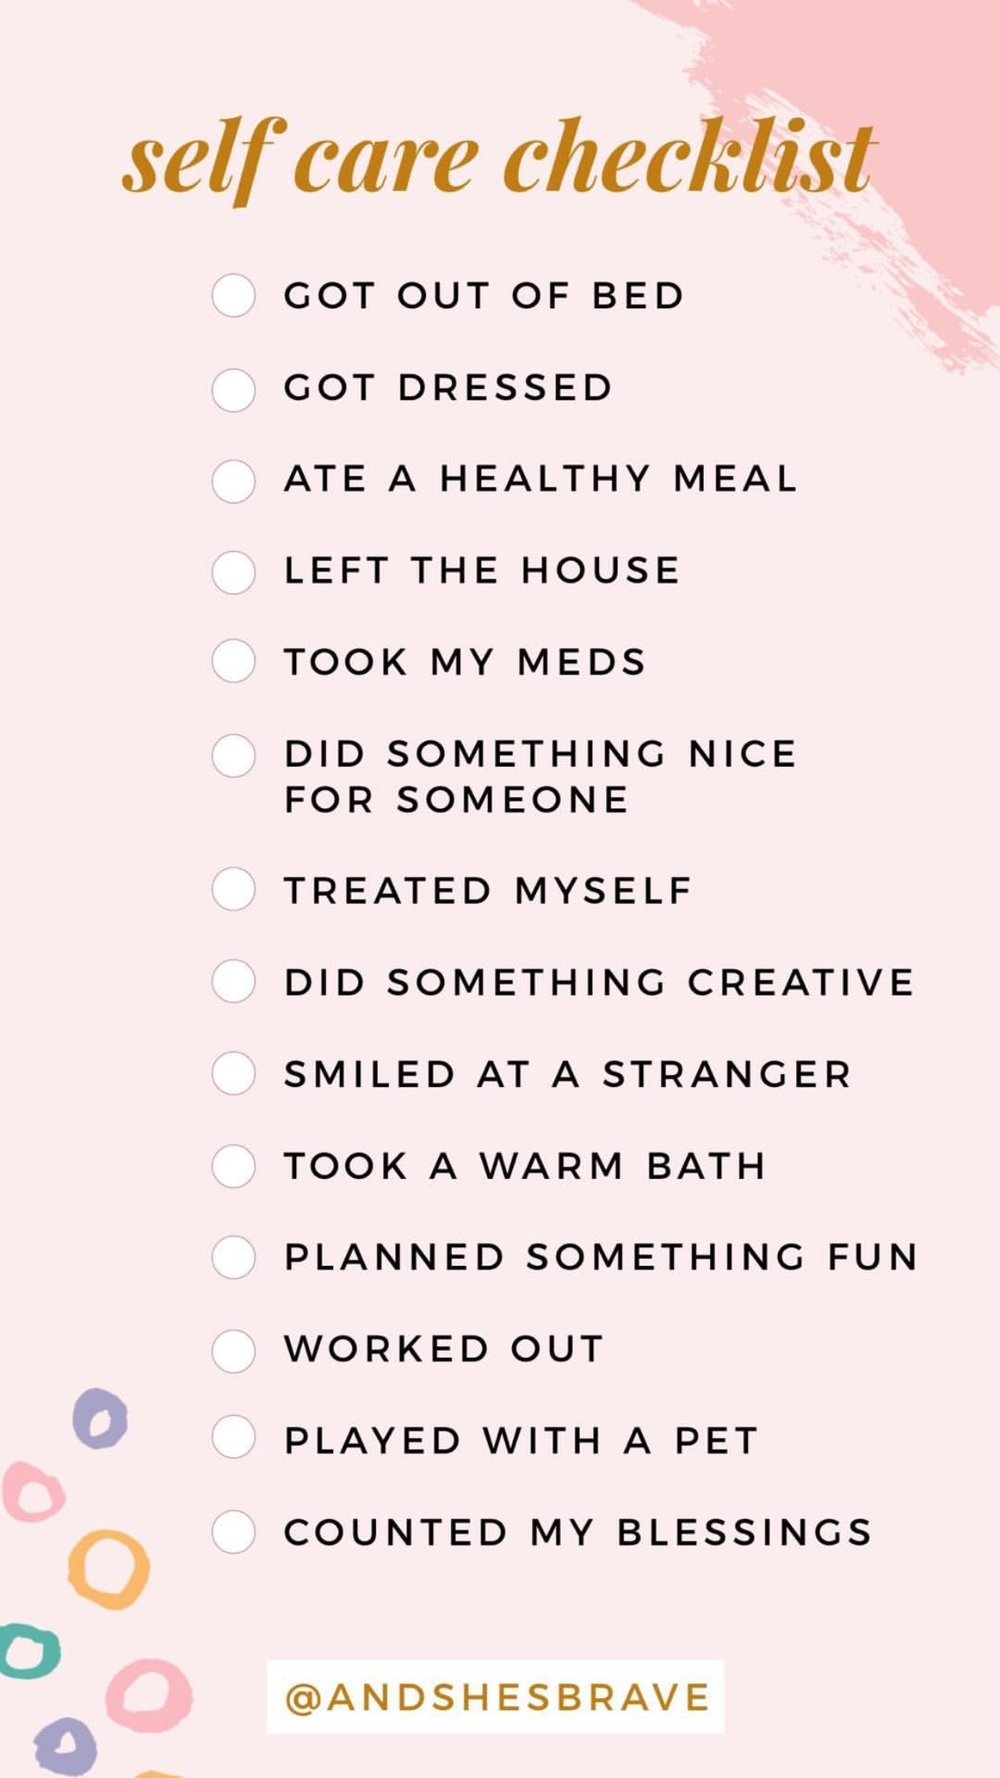 checklist courtesy of @andshesbrave